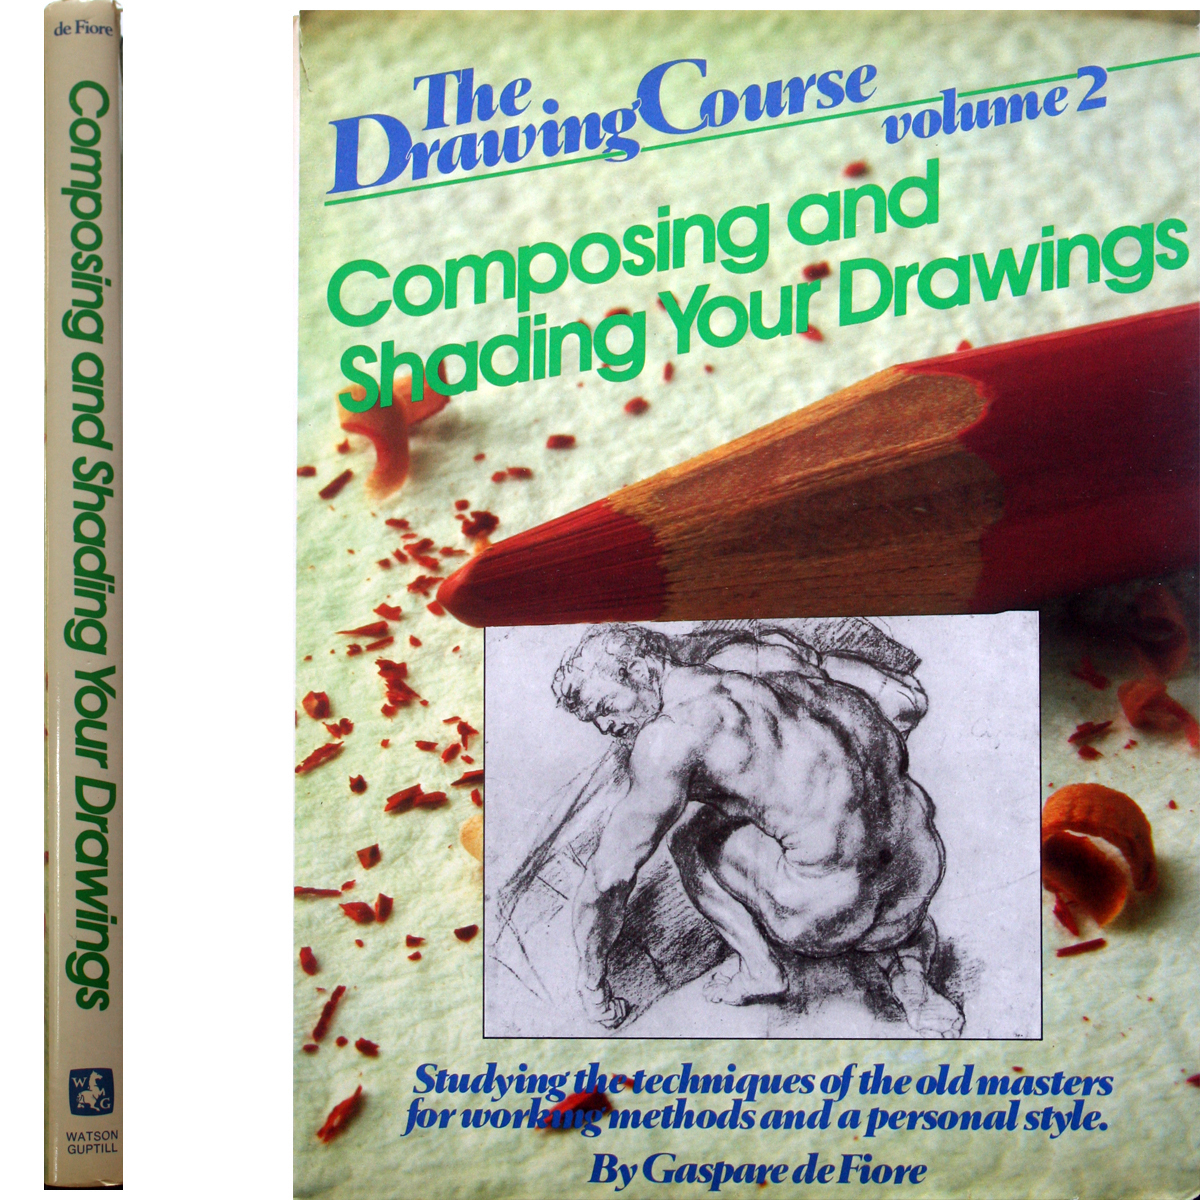 Composing & Shading Your Drawings - Gaspare de Fiore OOP!